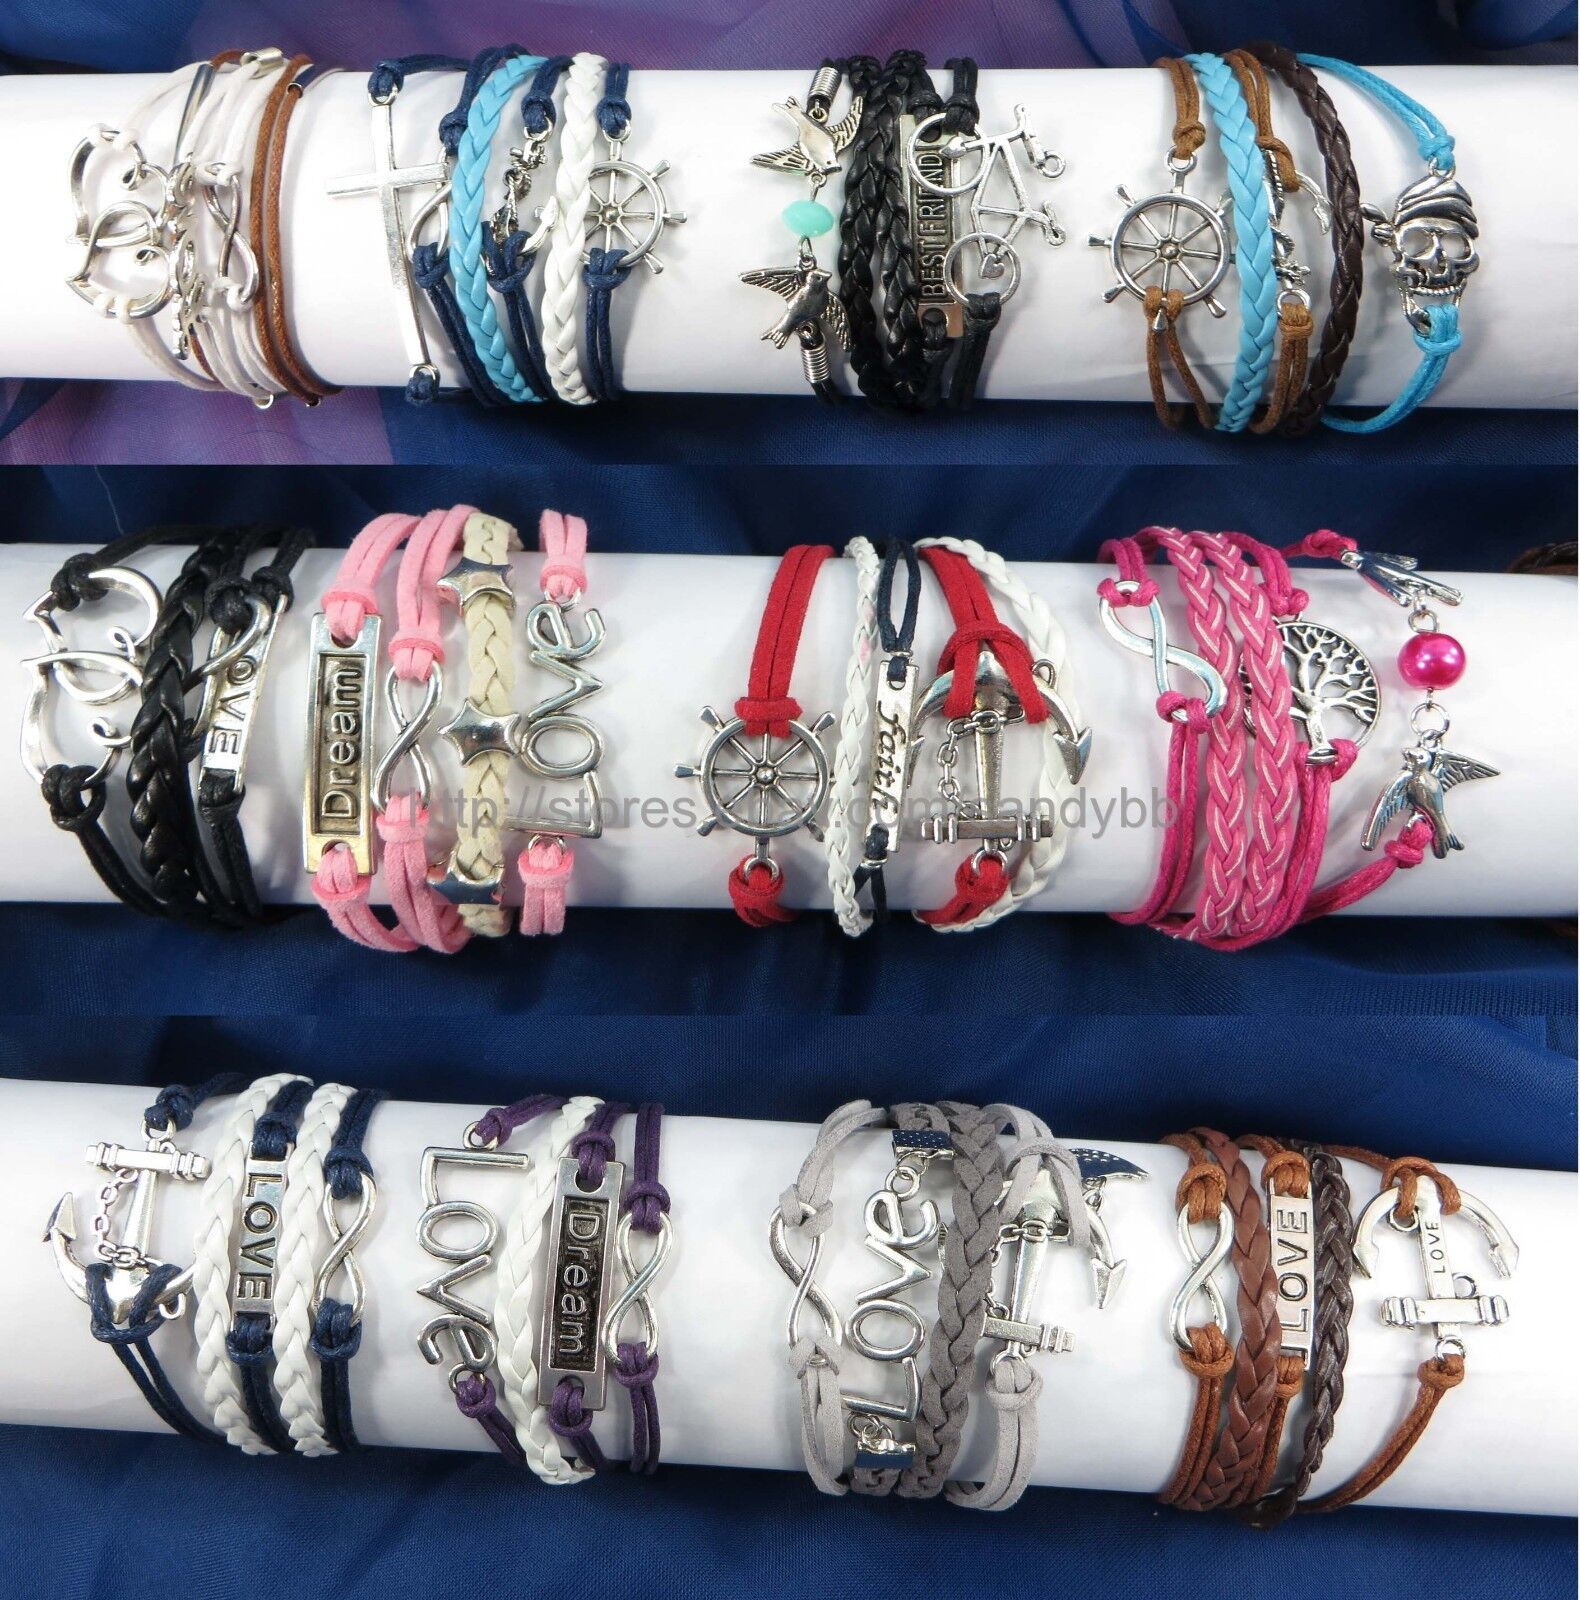 080 each  US Seller  50 pcs infinity charm bracelet wholesale jewelry lot